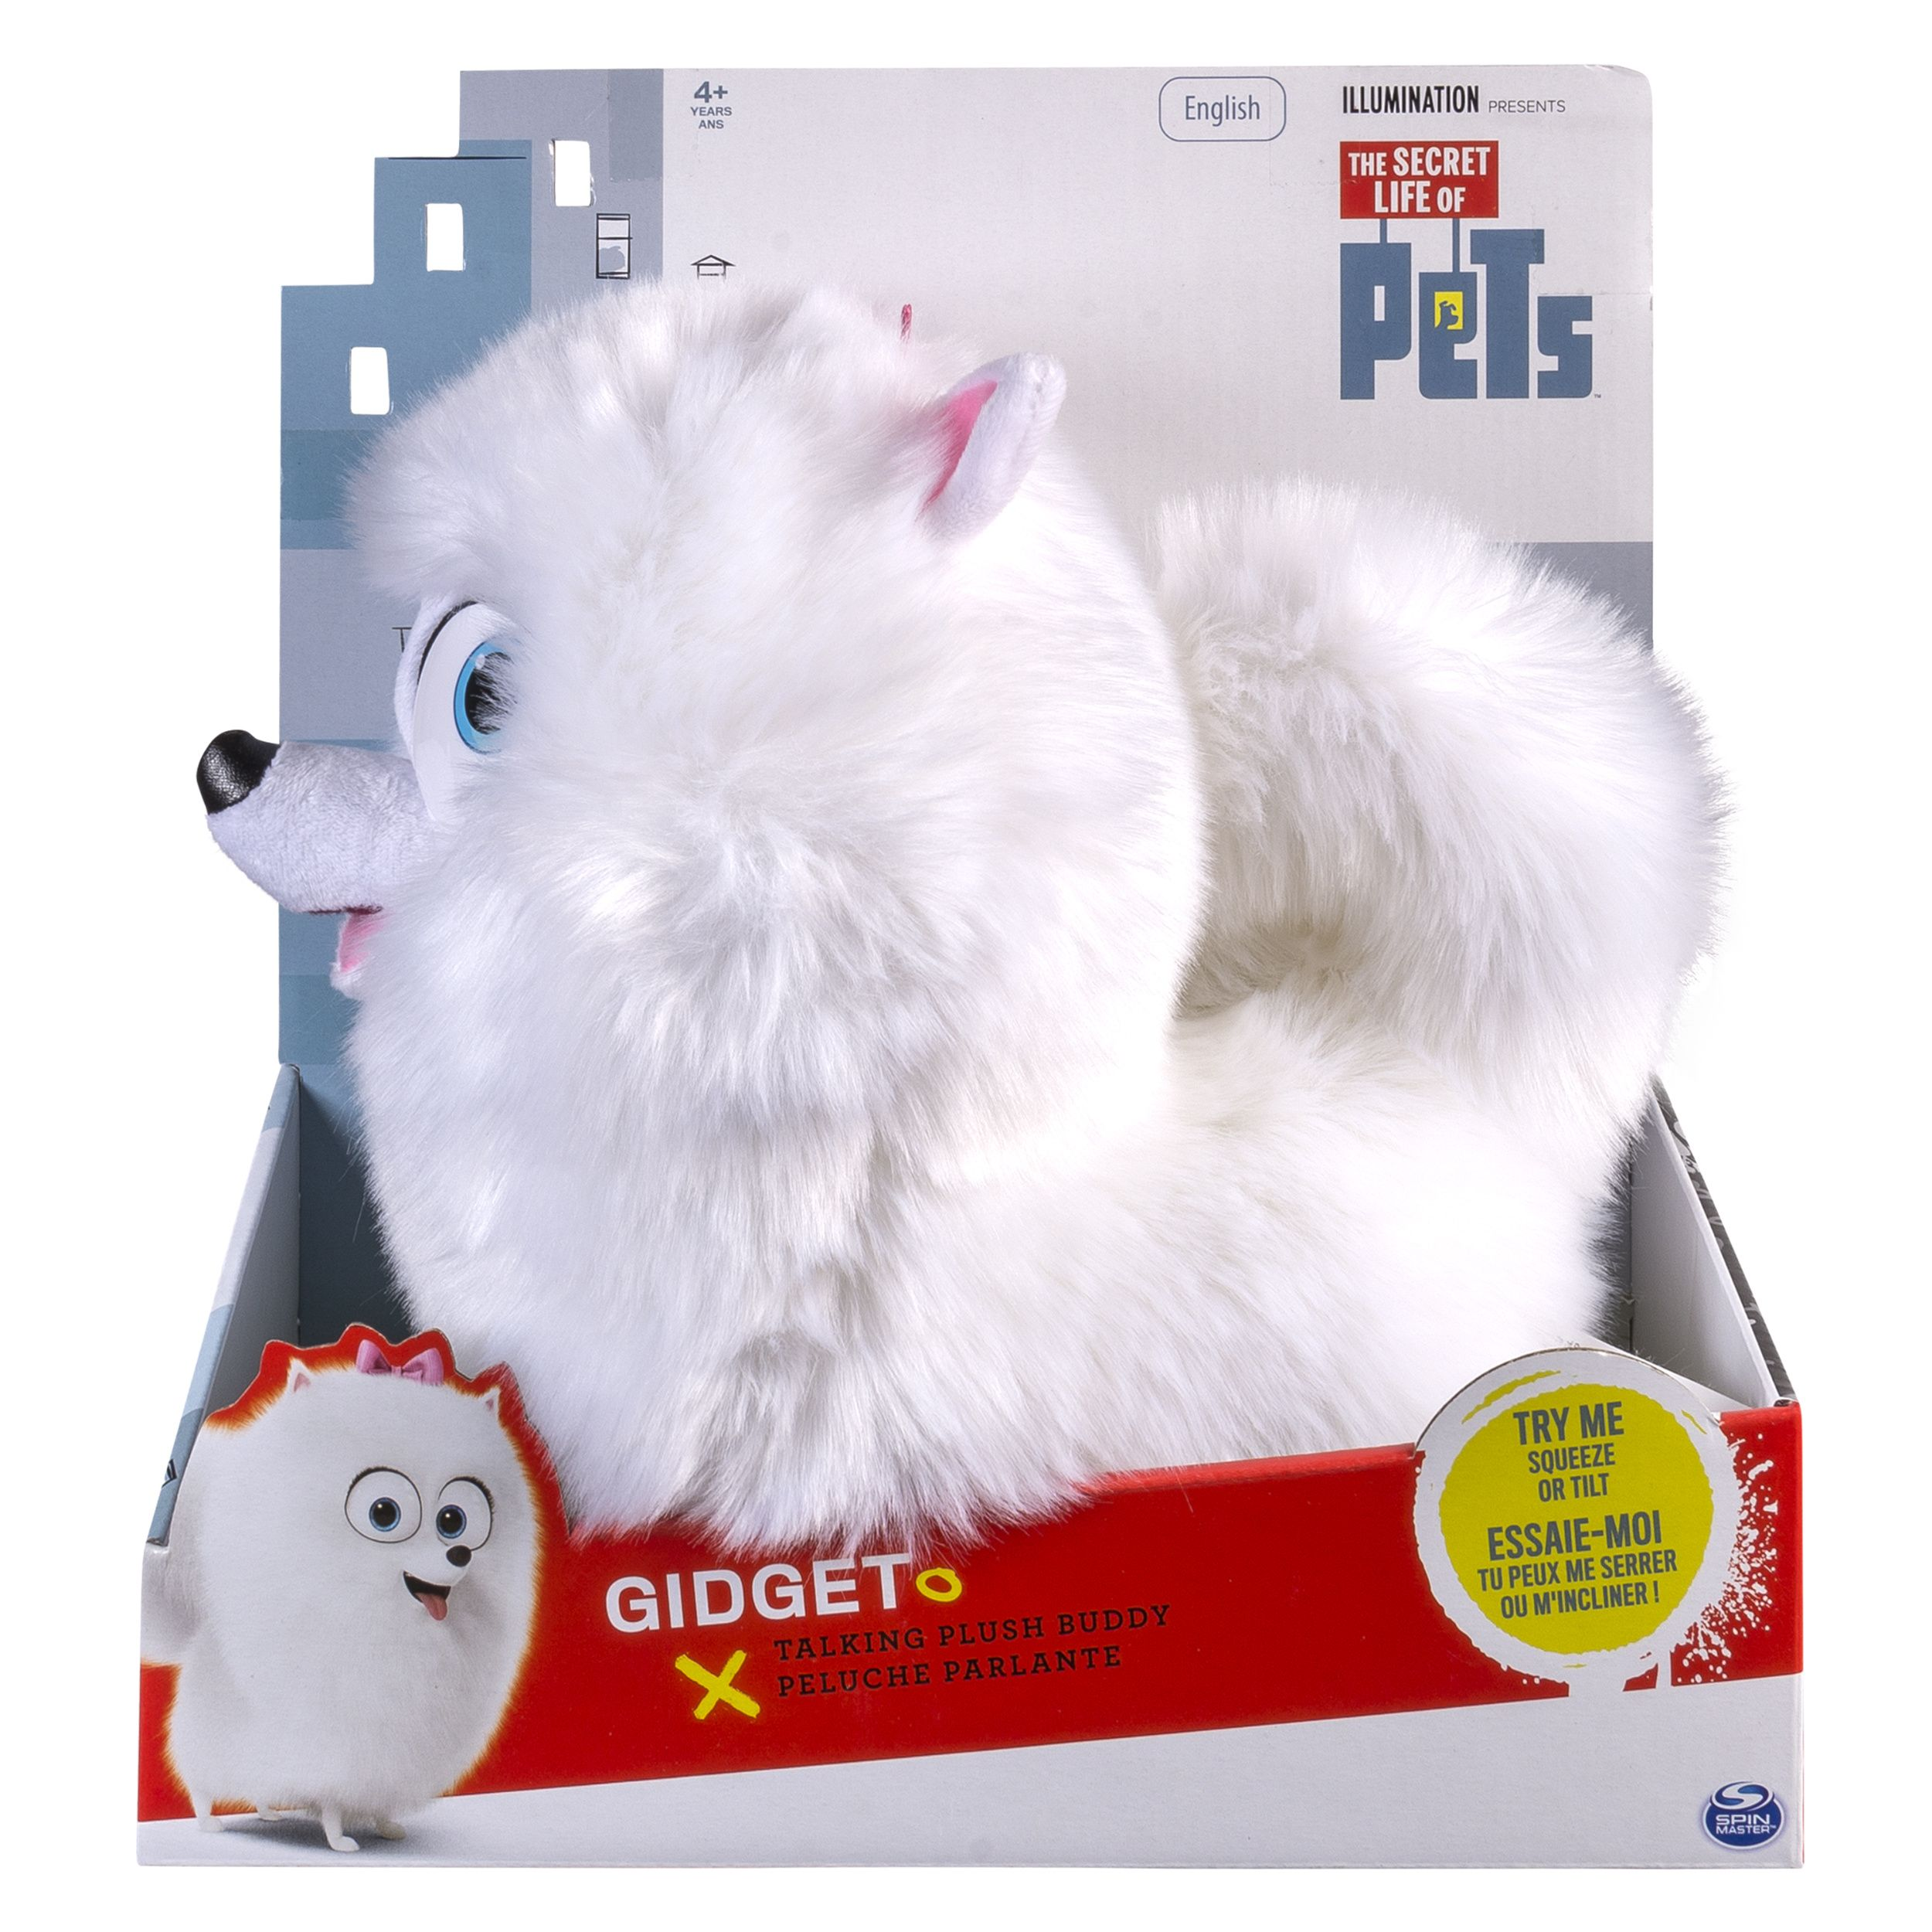 Ever Wonder What Your Pets Do While You Re Not Home Explore The Secret Life Of Pets With Plush Buddies In 2020 Secret Life Of Pets Secret Life Kids Toy Gifts